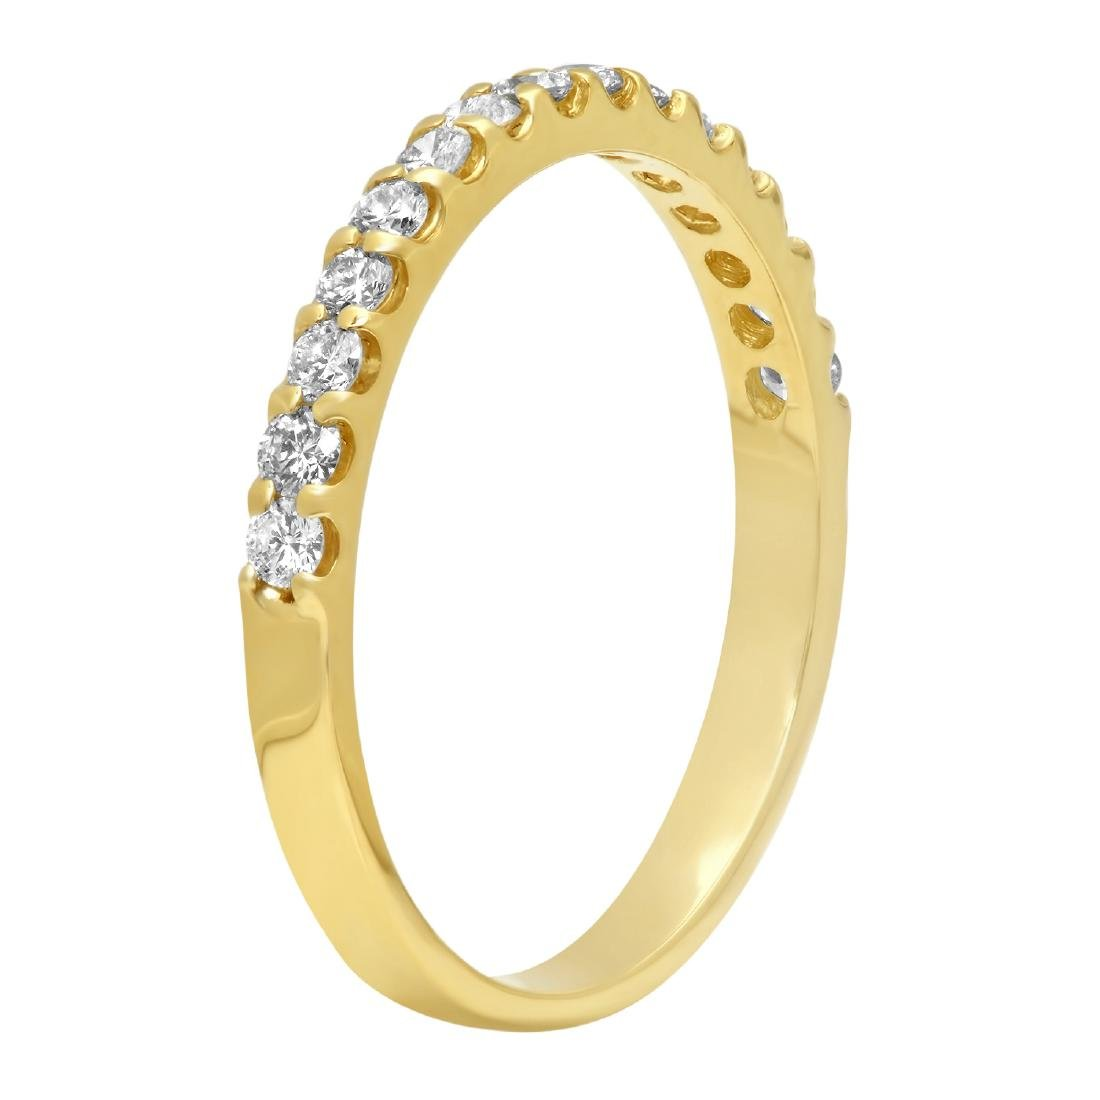 0.35 Carat Natural Diamond 18K Solid Yellow Gold Ring - 2